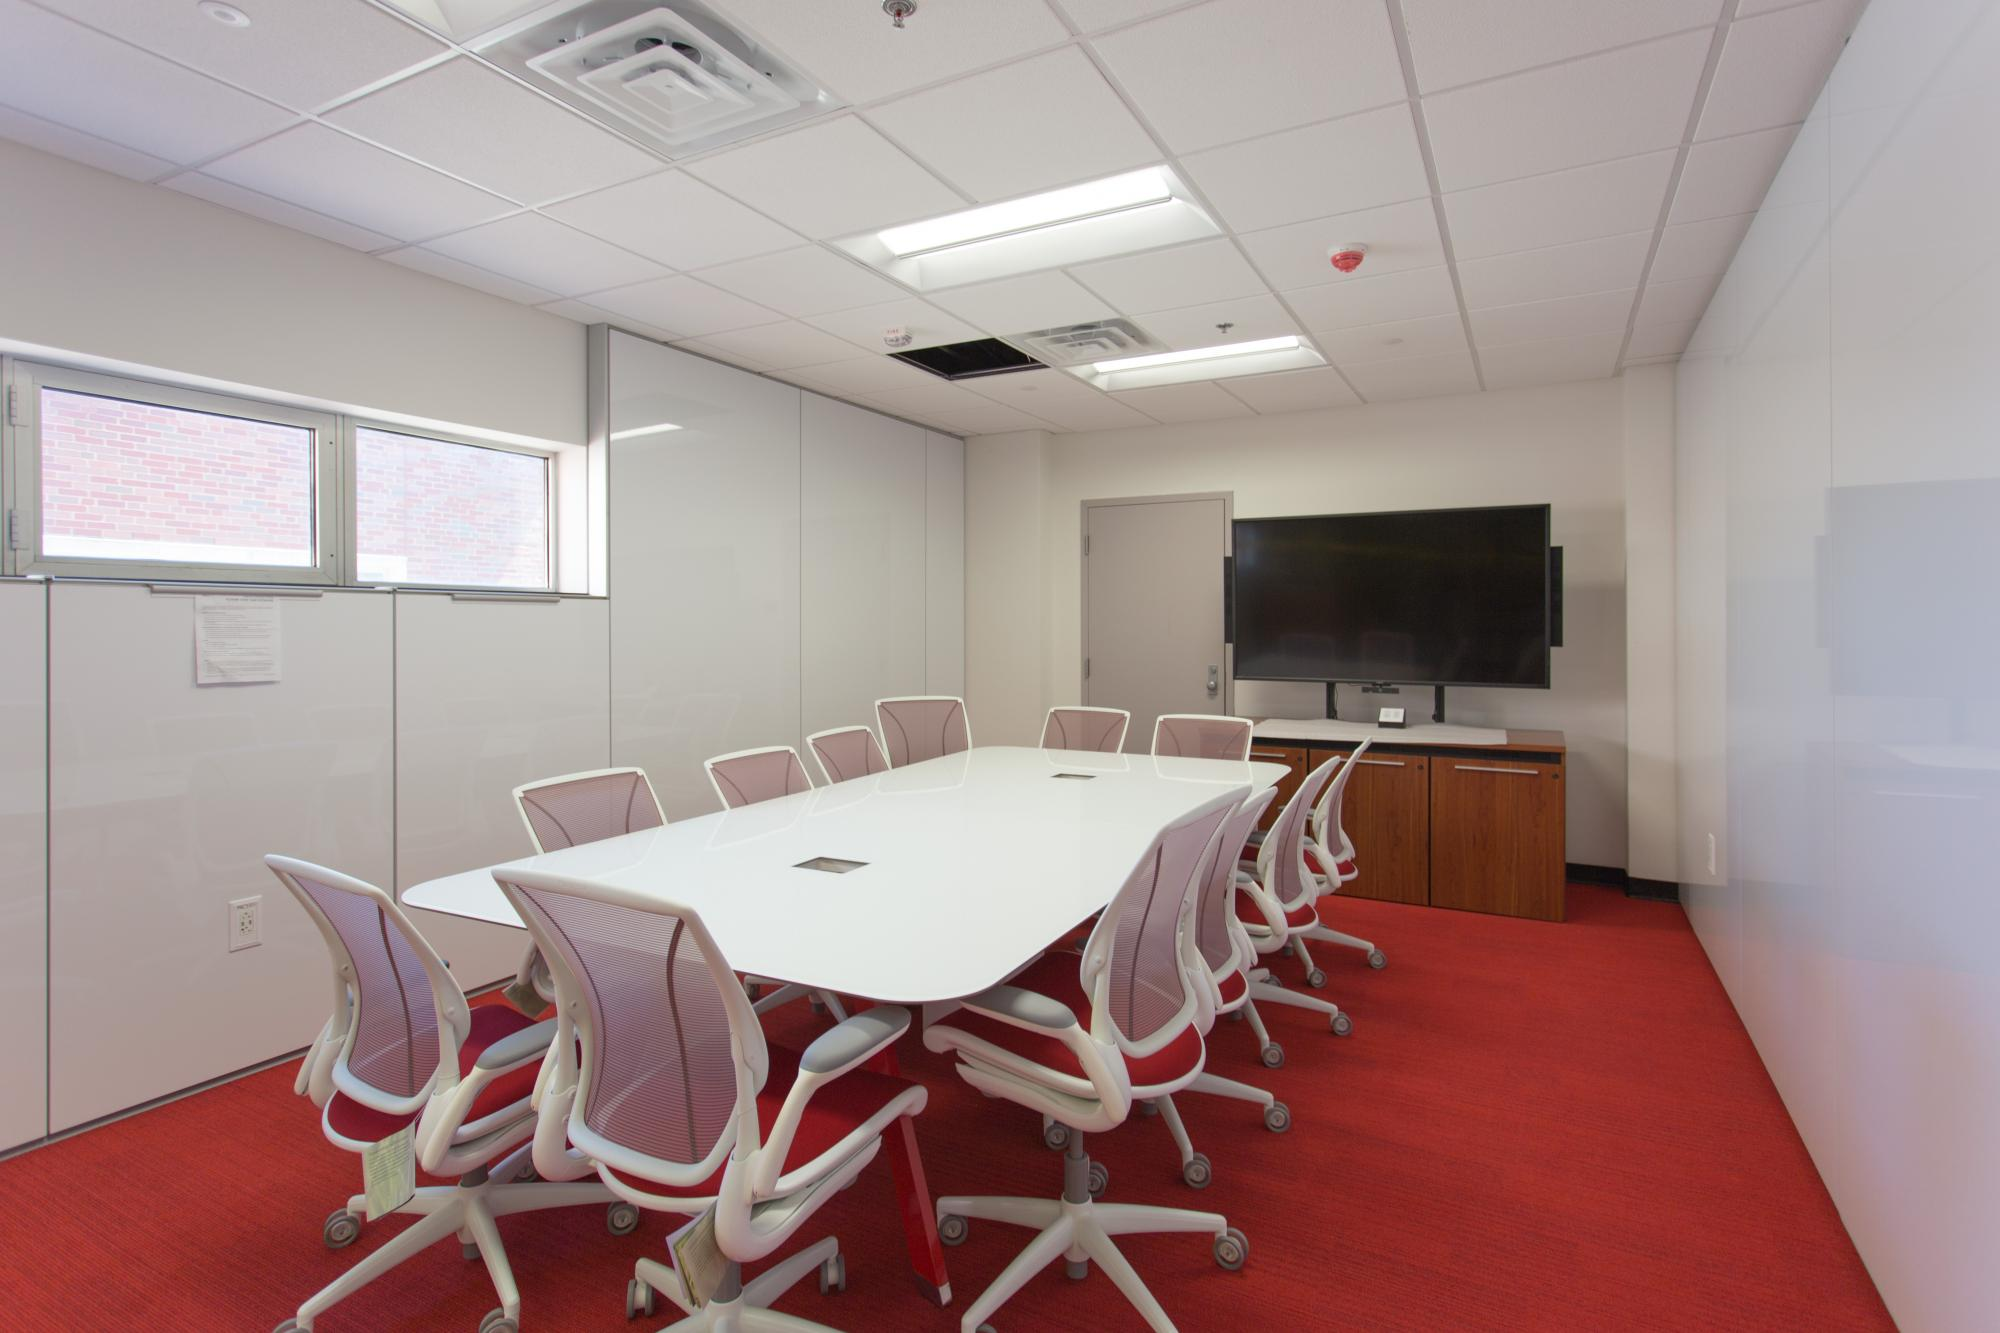 A room with a wall mounted screen, whiteboard wall, table and chairs